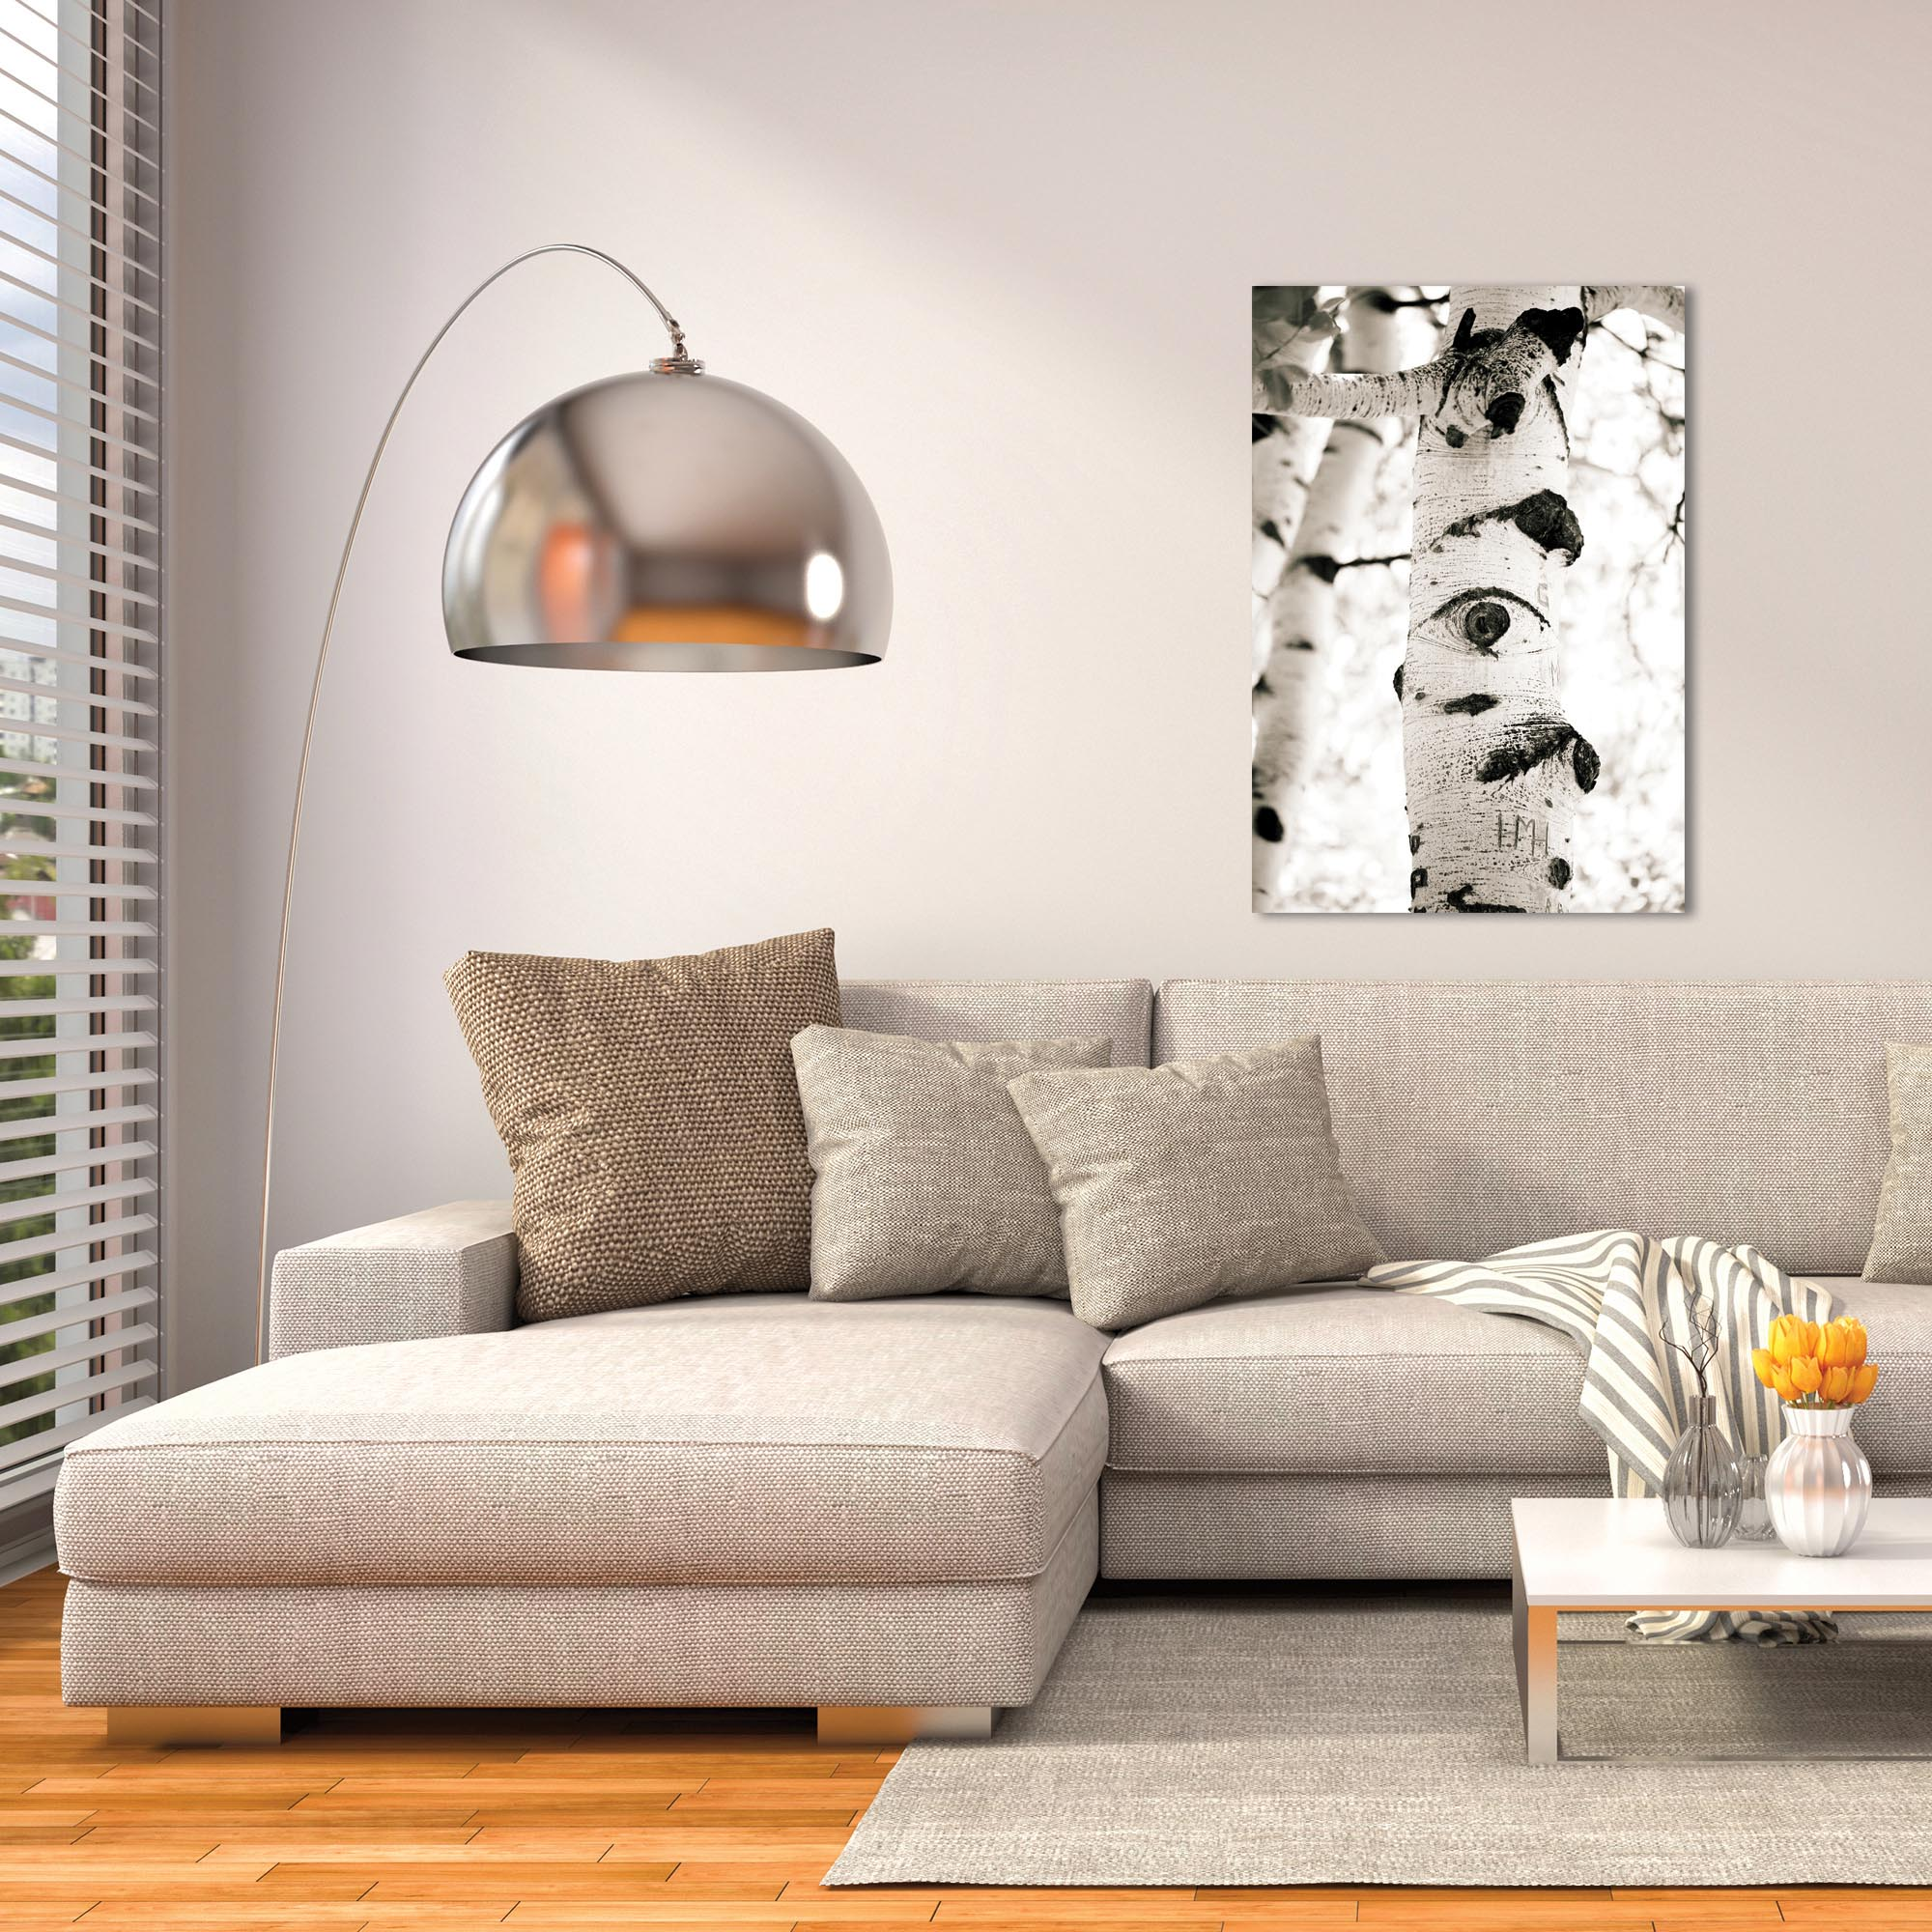 Landscape Photography 'Aspen Eyes' - Nature Scene Art on Metal or Plexiglass - Lifestyle View